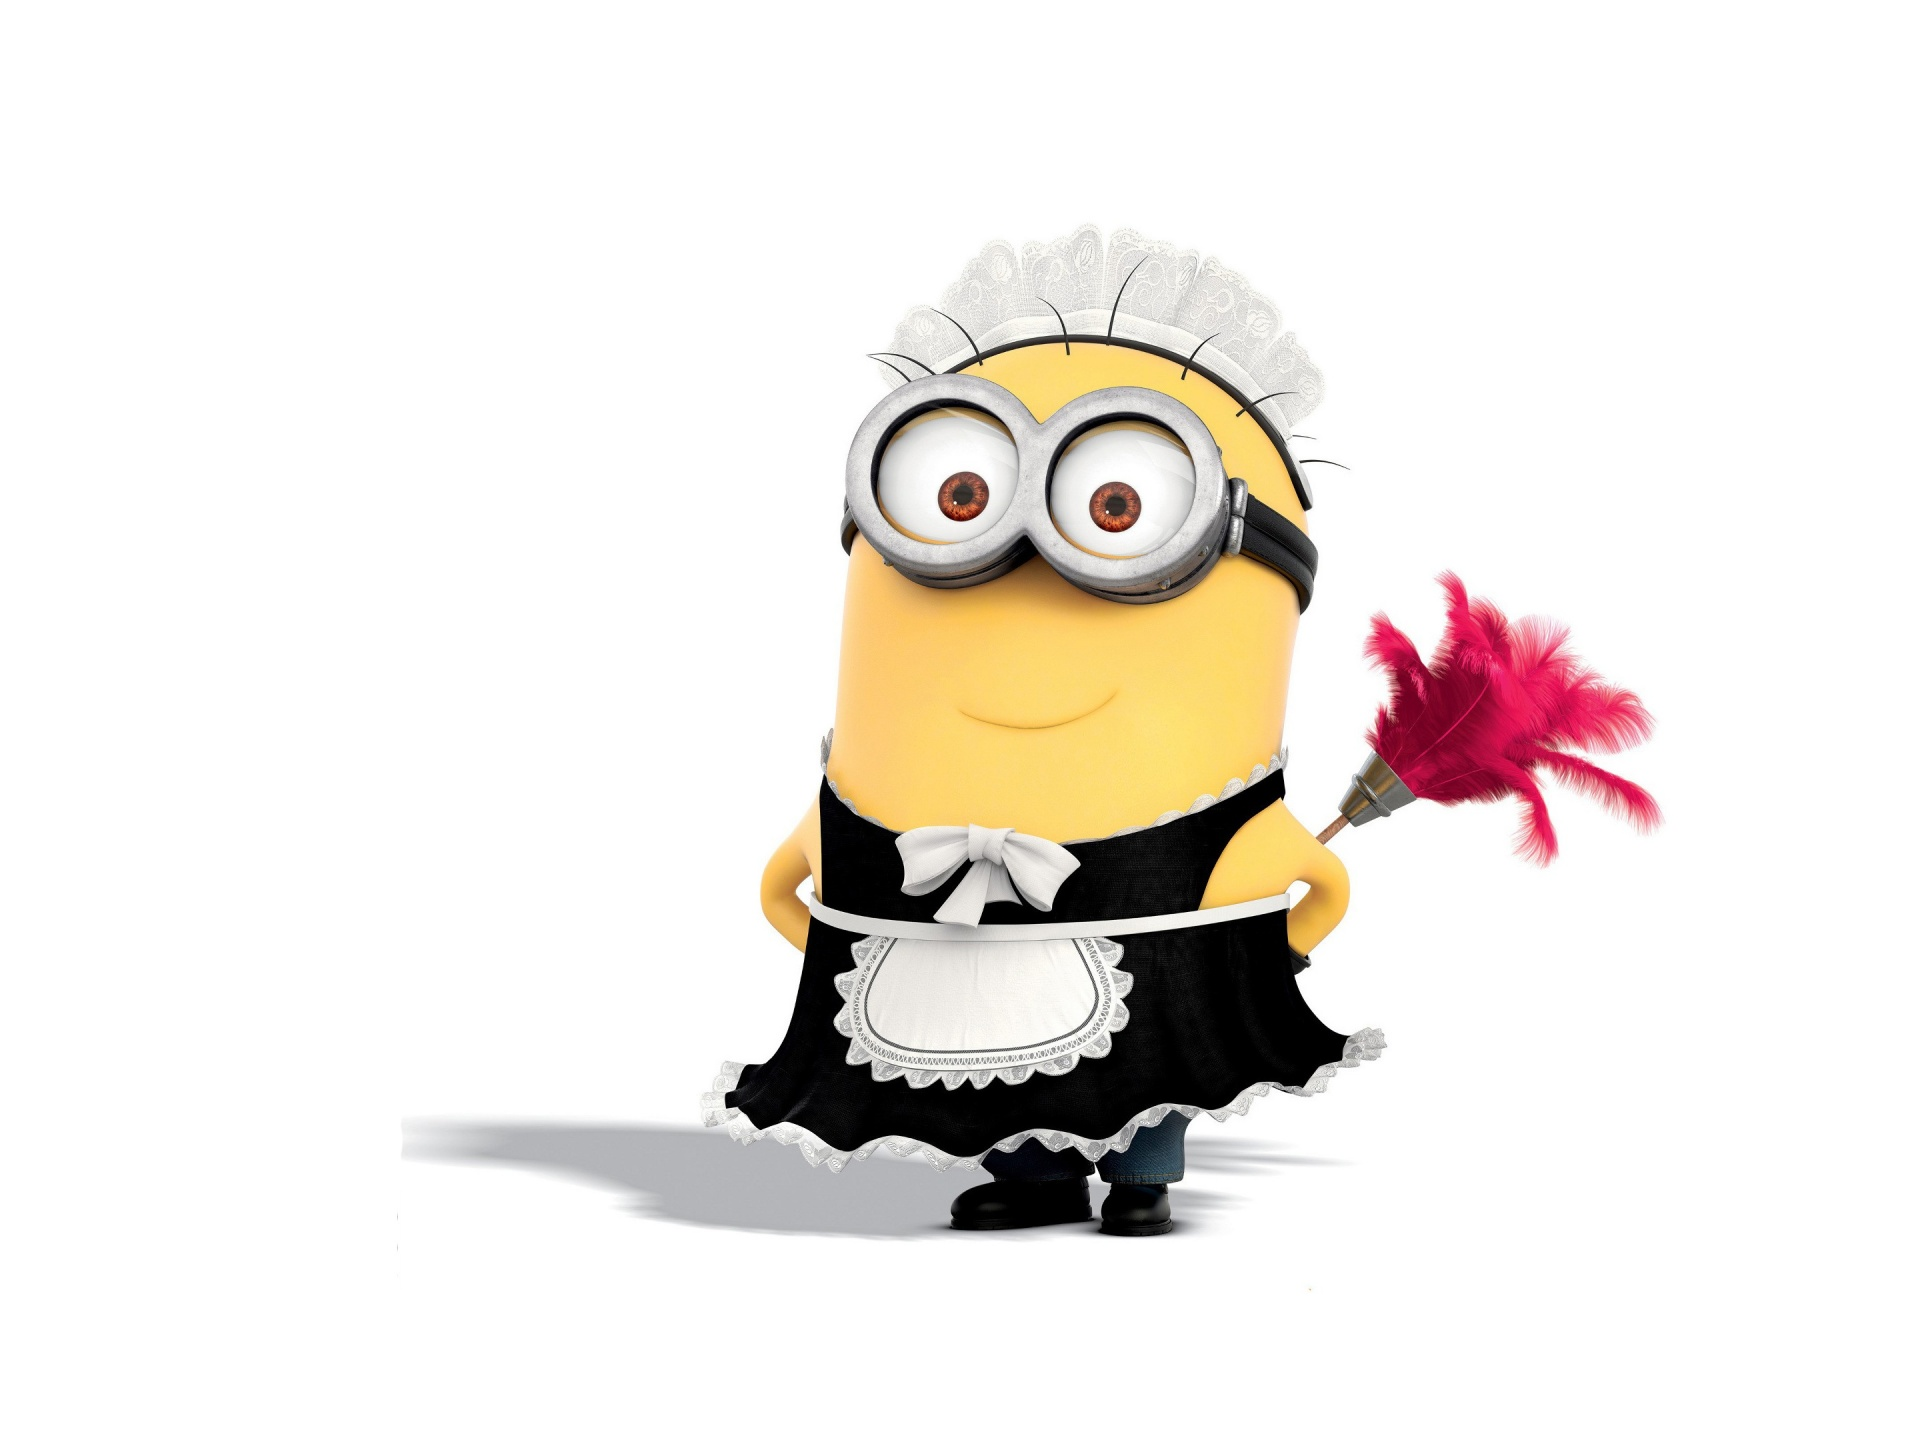 French maid minion with duster